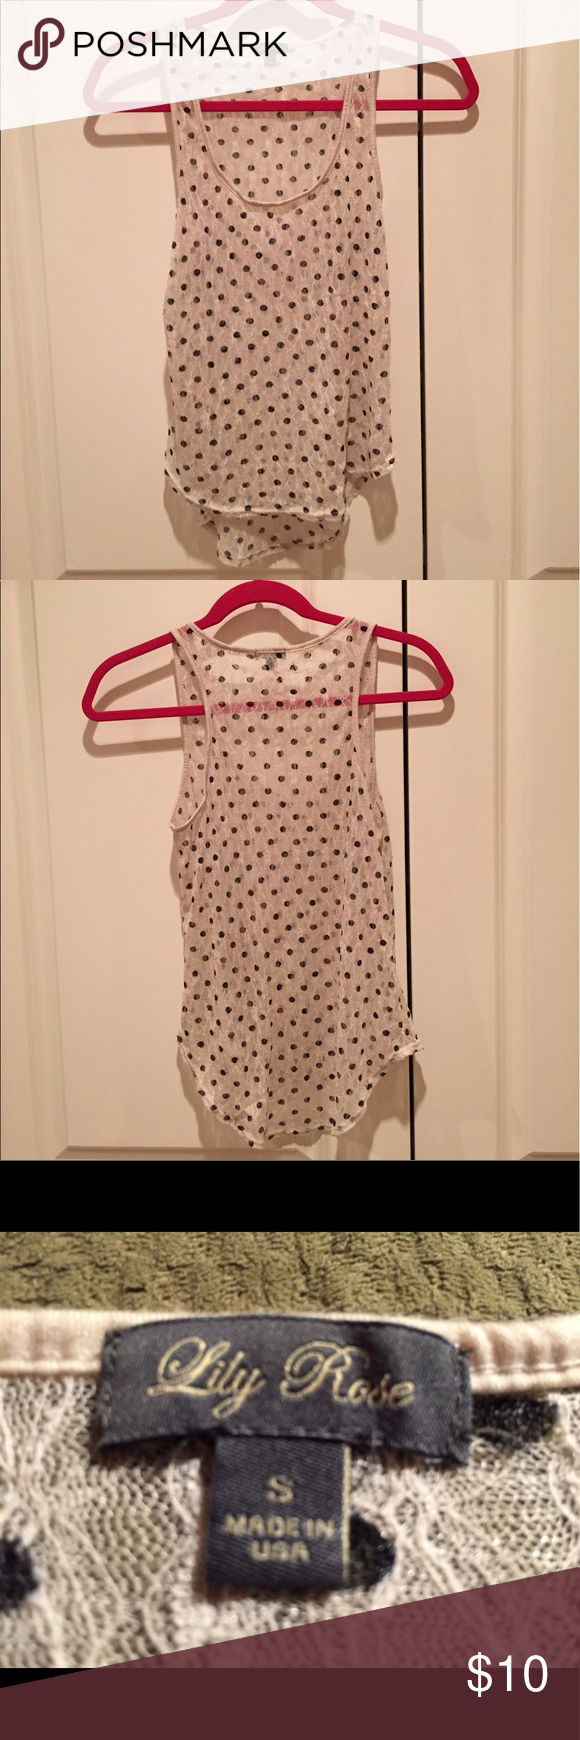 Lily Rose Cream with Black Polka Dots Lace Tank This super cute tank is in very good condition. There are some small signs of wear like a few loose strings. You really have to look for them though. This is a hi/low tank. It's longer in the back than the front. It is all lace so it is very sheer! Lily Rose Tops Tank Tops